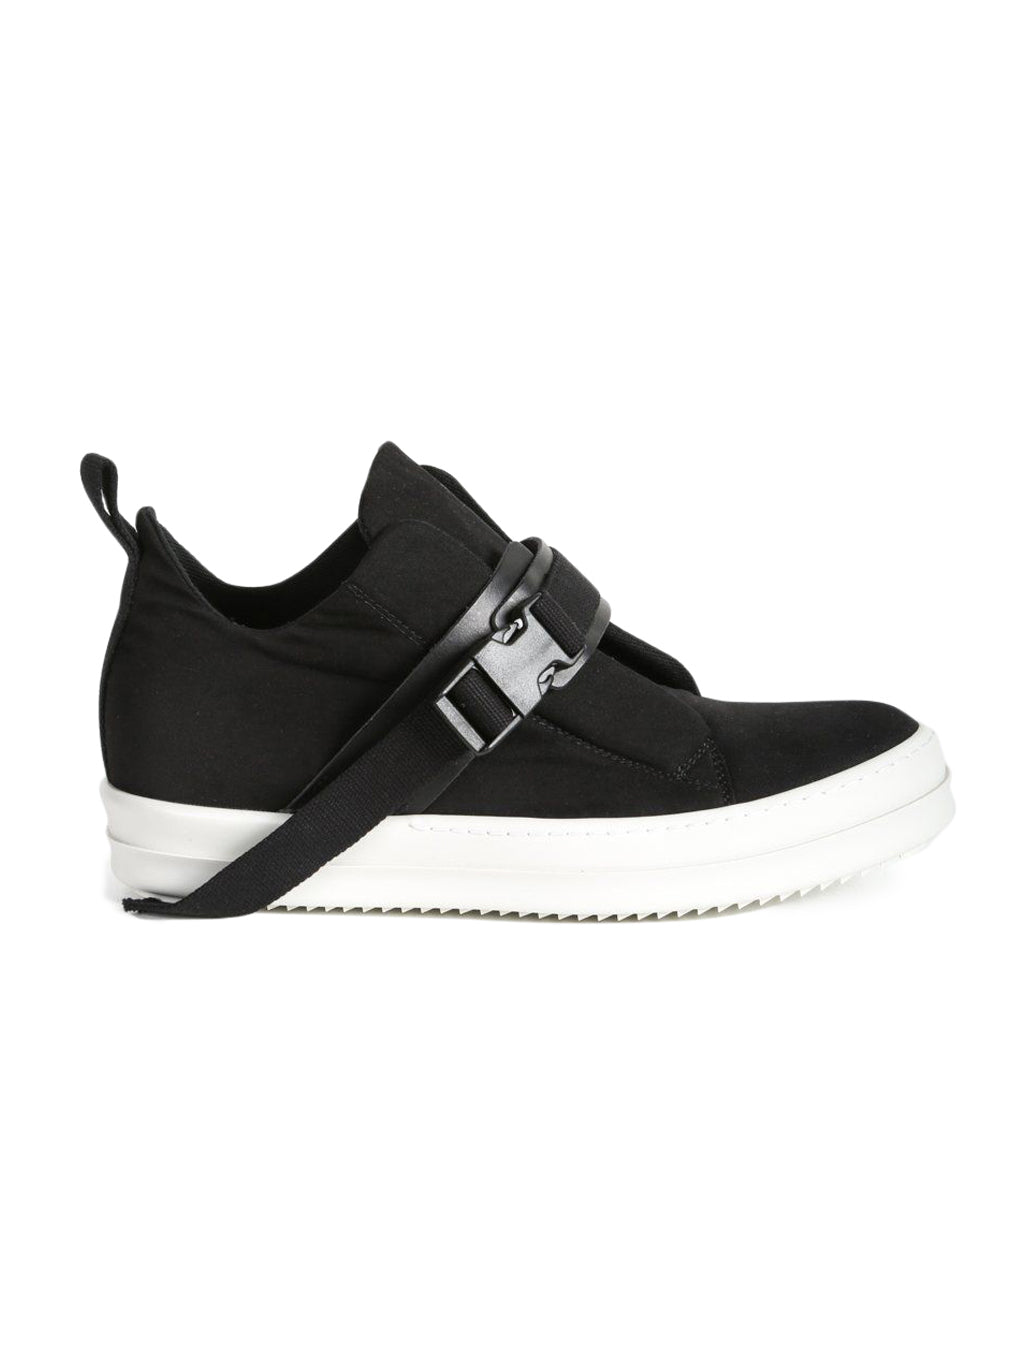 Black & White Strap Island Sneakers